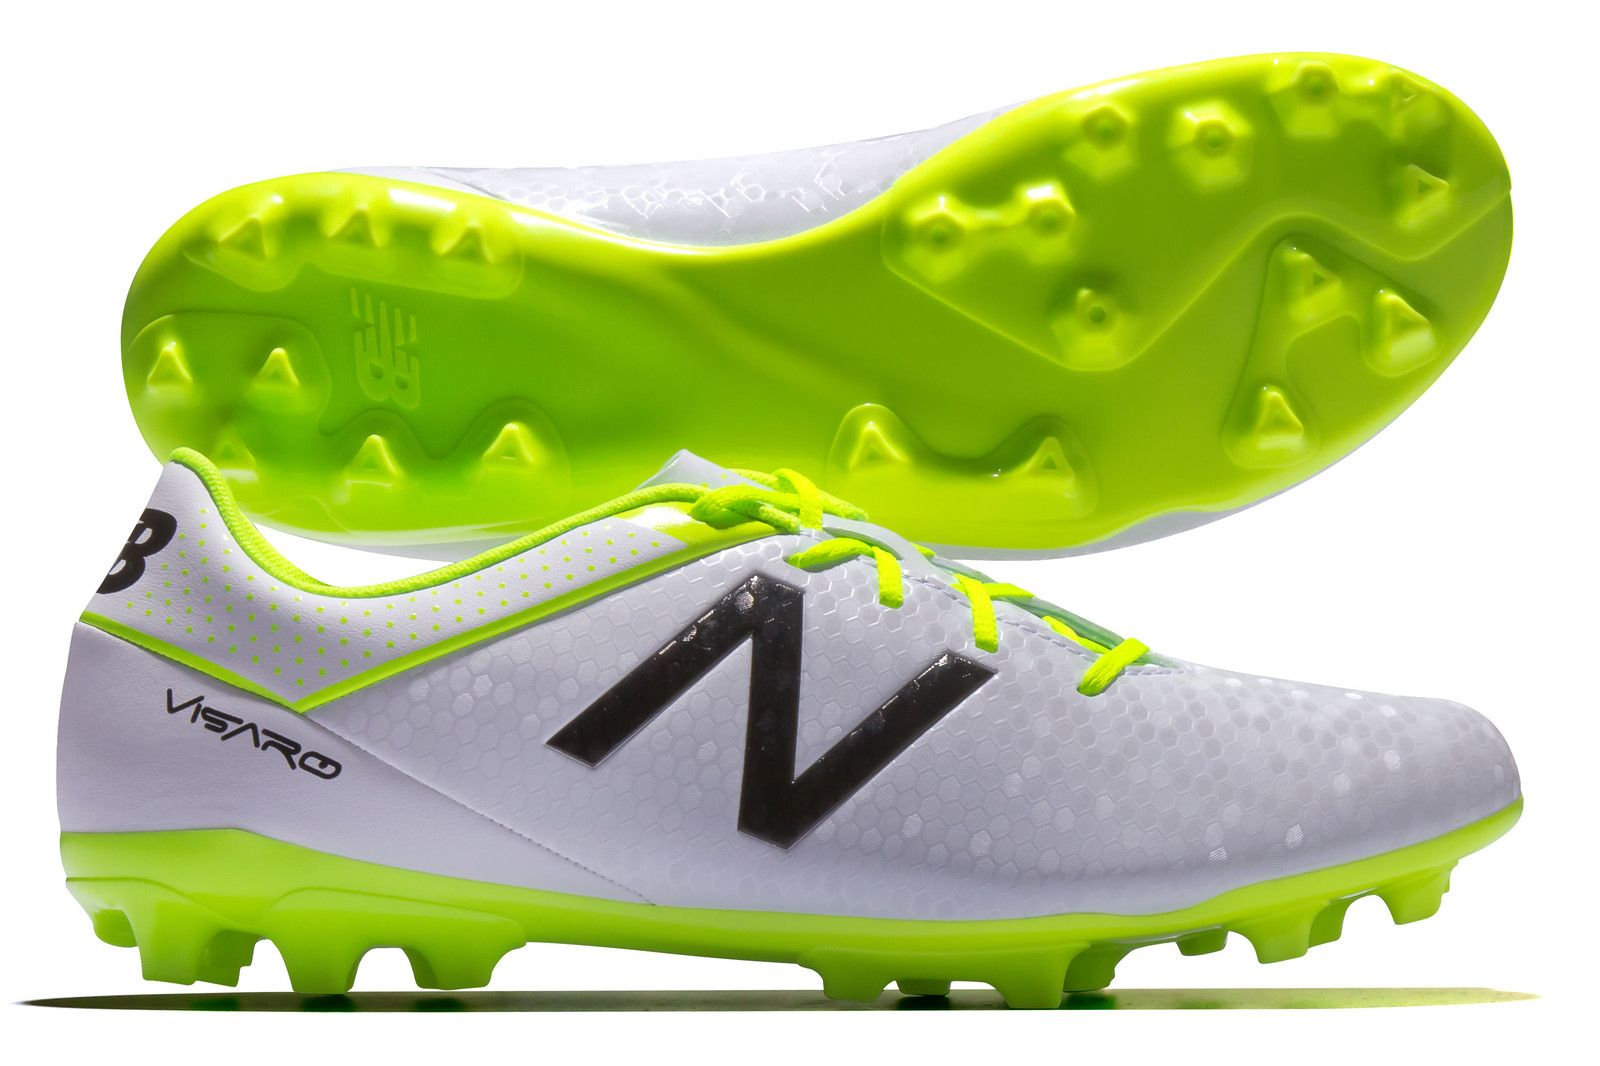 64f07adcc5189 New Balance Visaro Control AG Football Boots Lovell Rugby, £44.99 ...